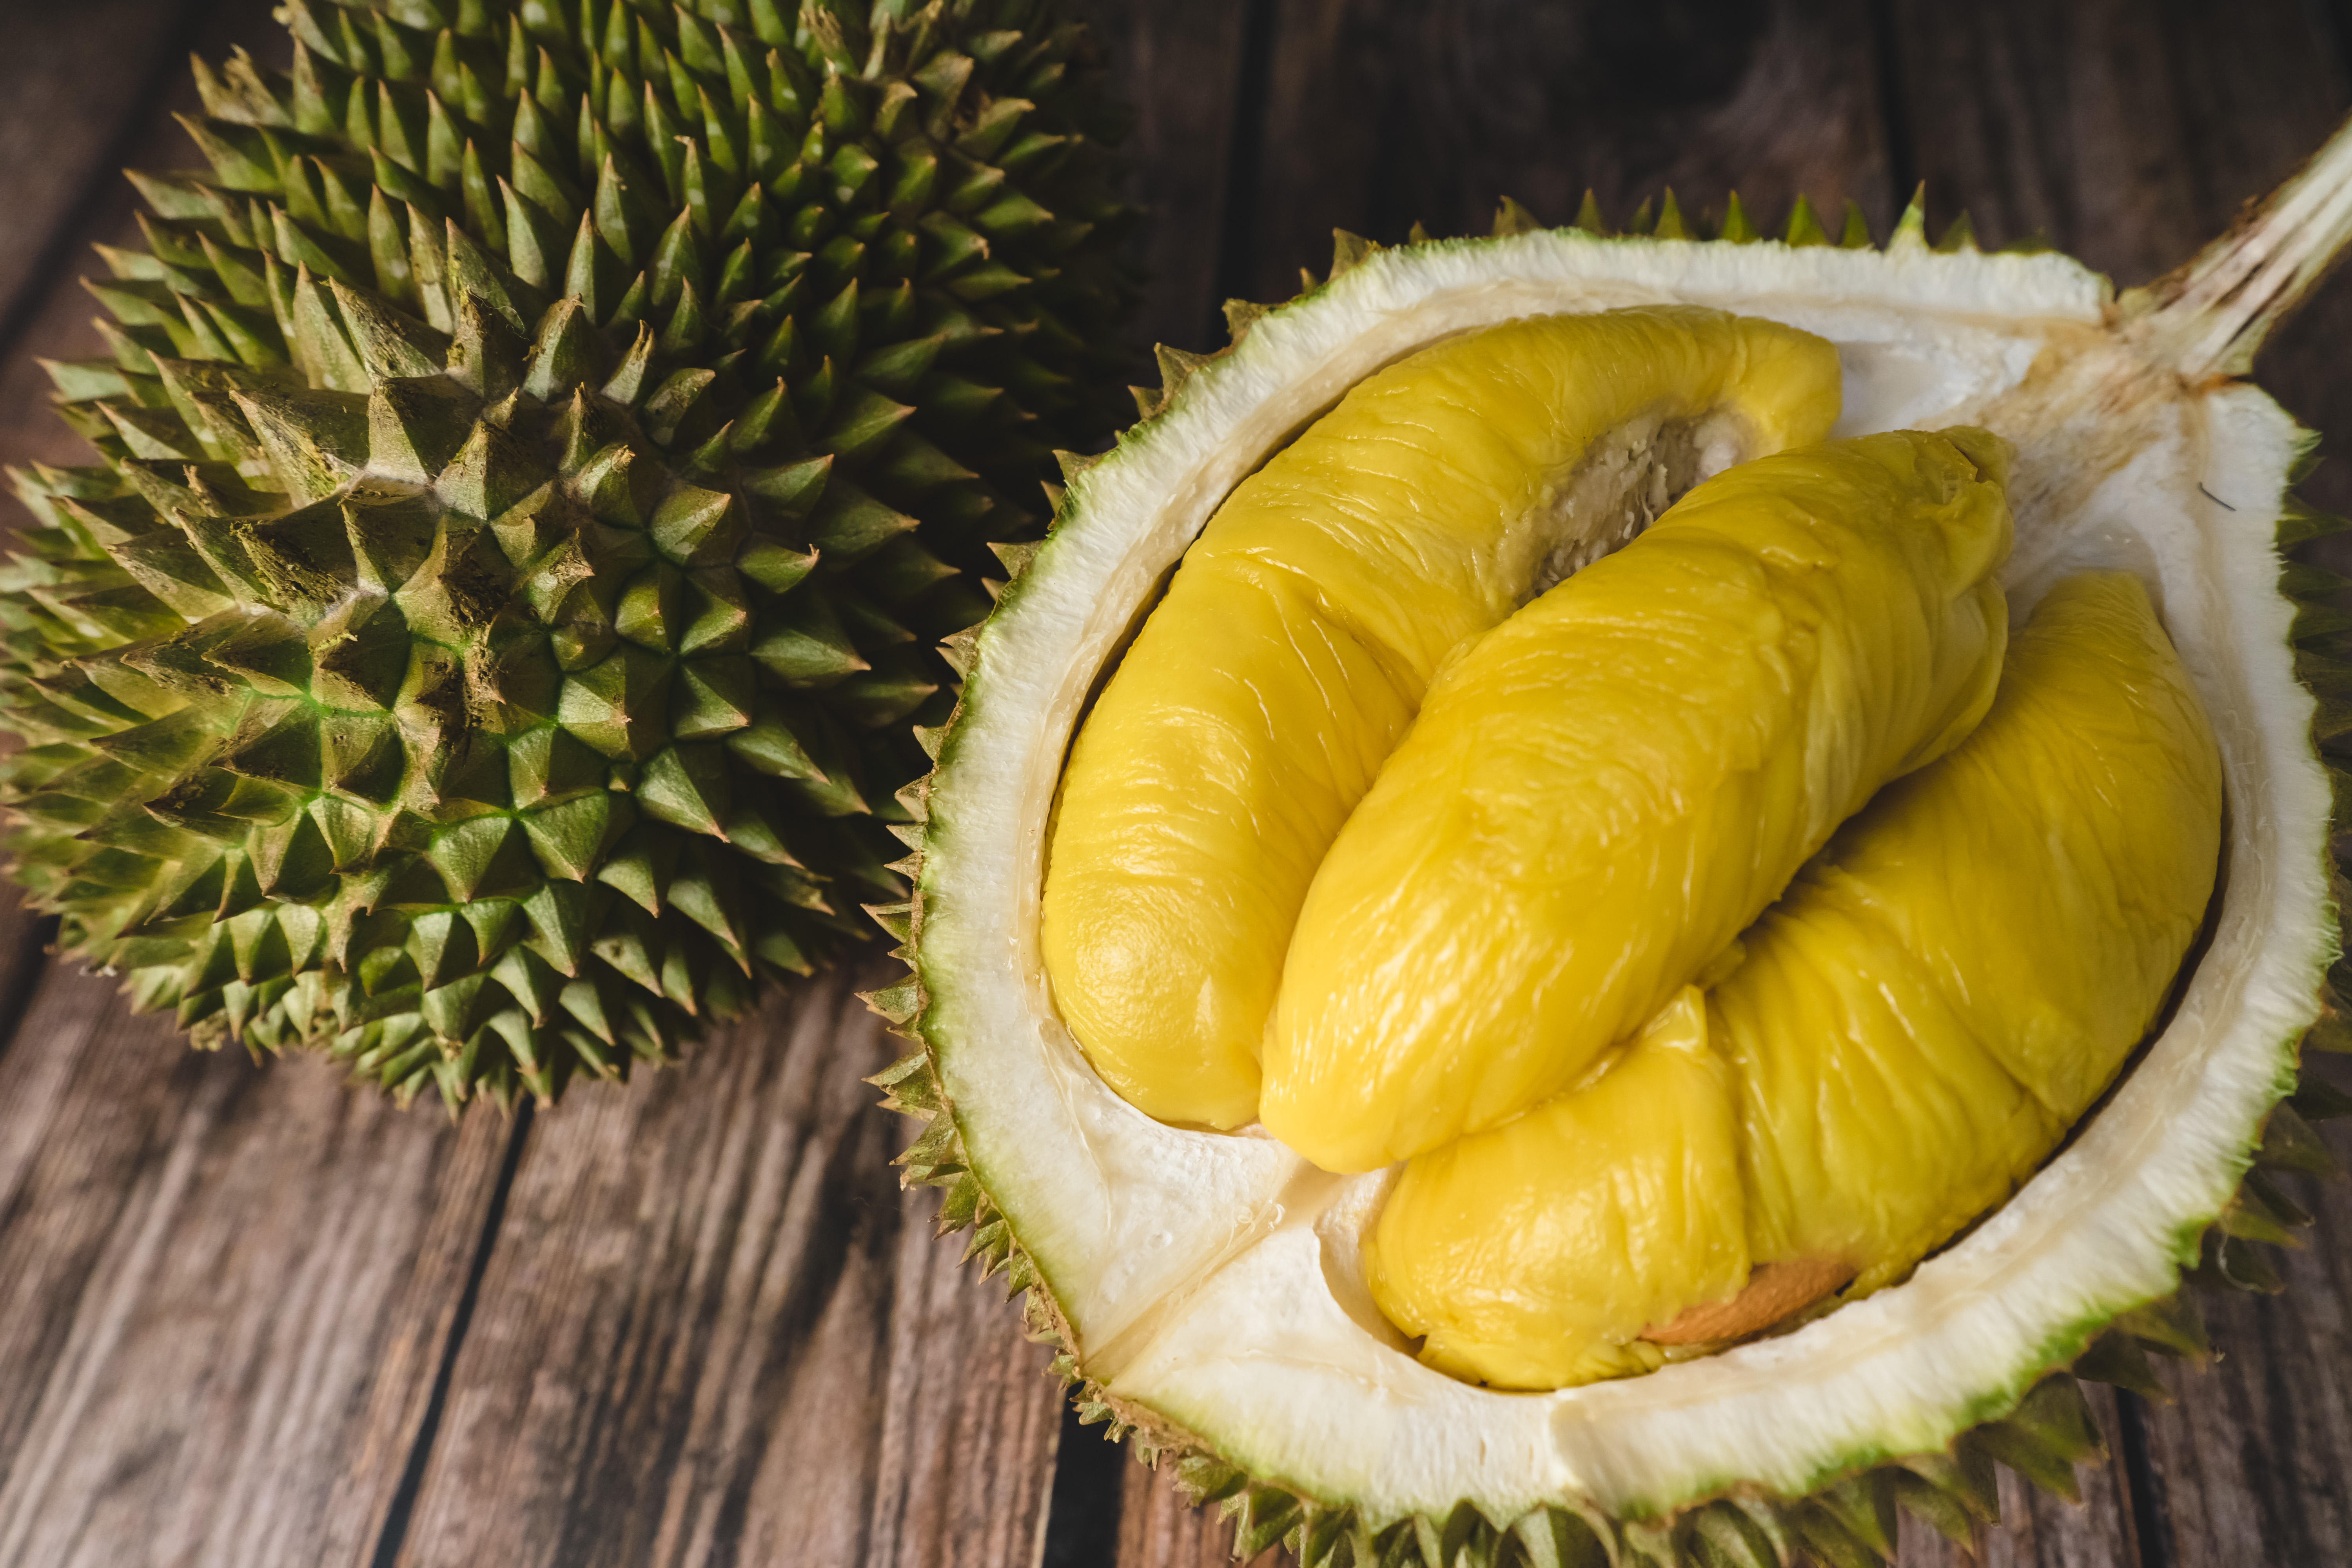 After Falling In Love With Durian In Malaysia, Japanese Yougaleryr Hunts For It In Hong Kong